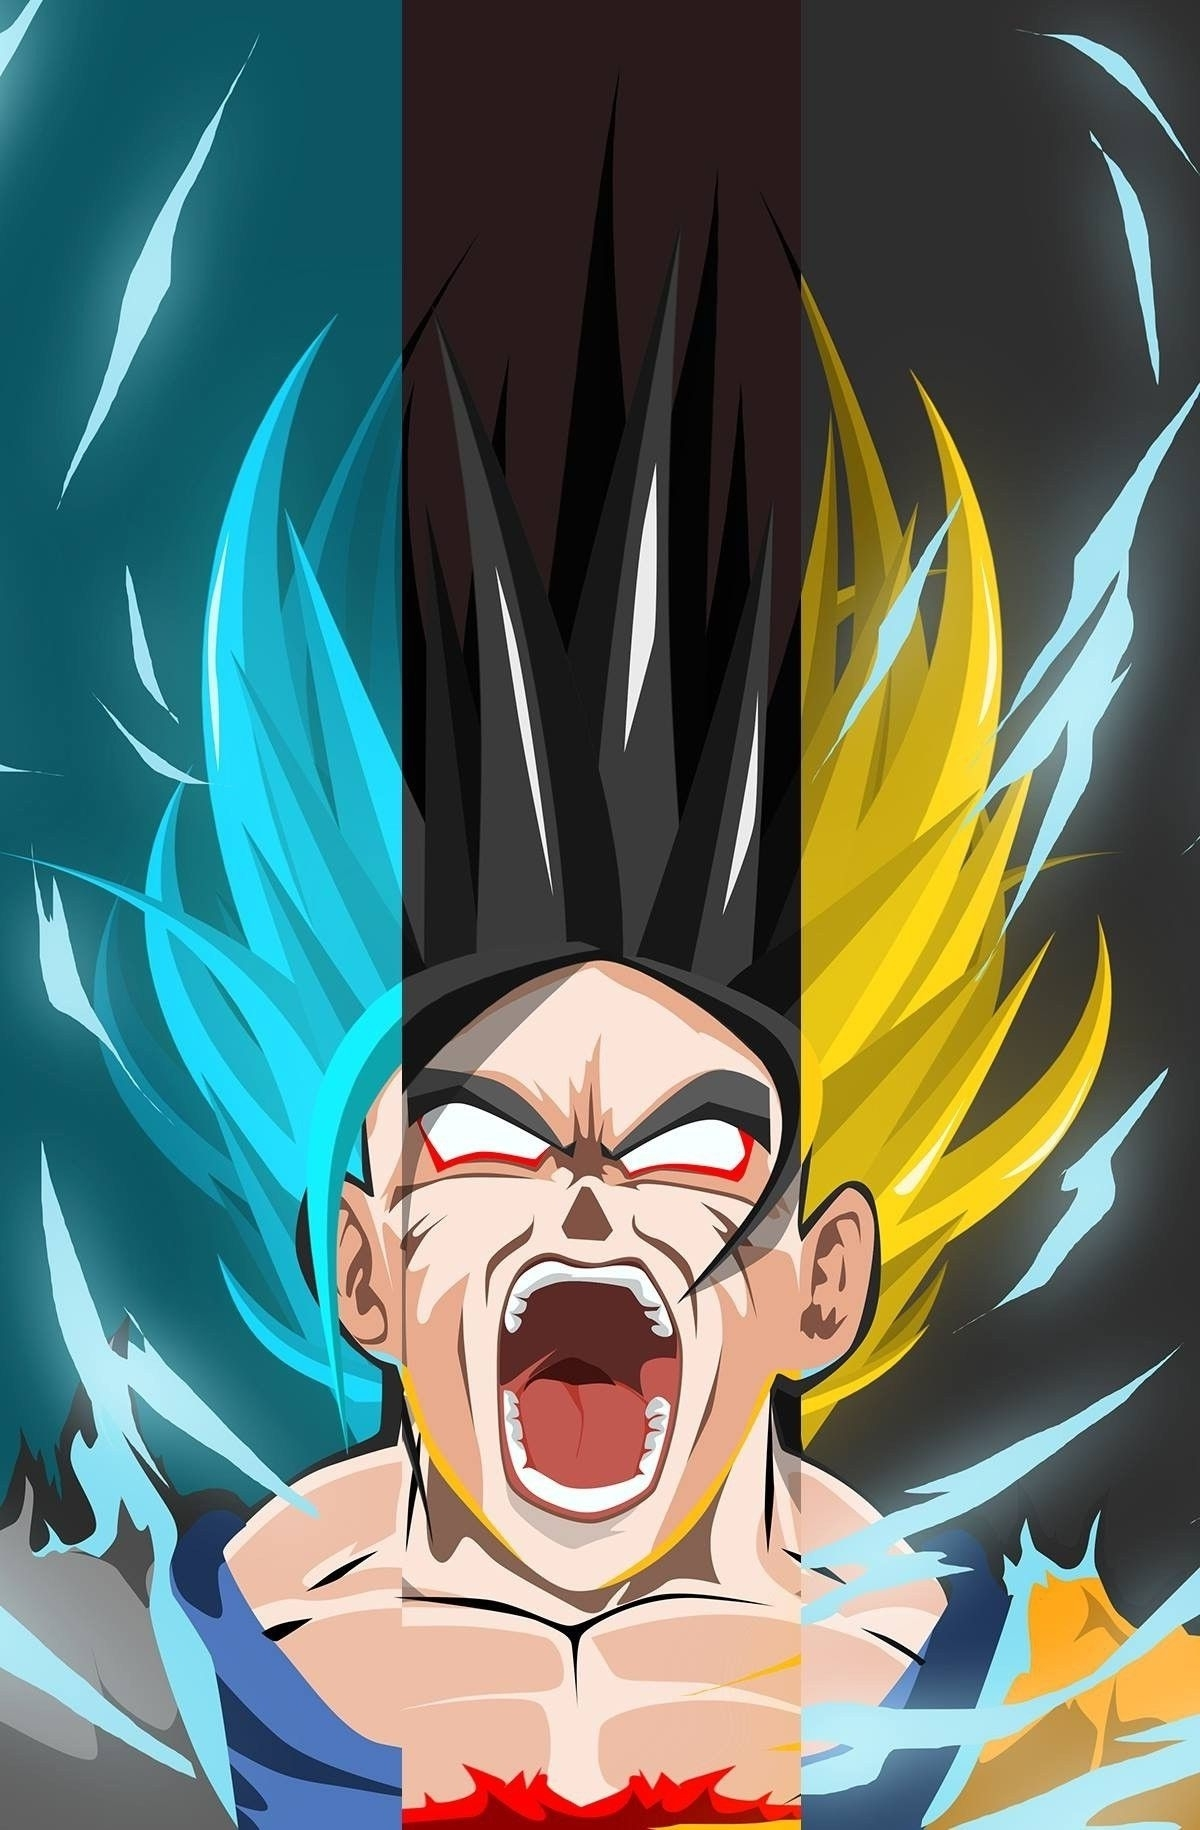 10 Latest Dragon Ball Super Wallpaper Iphone FULL HD 1920×1080 For PC Background